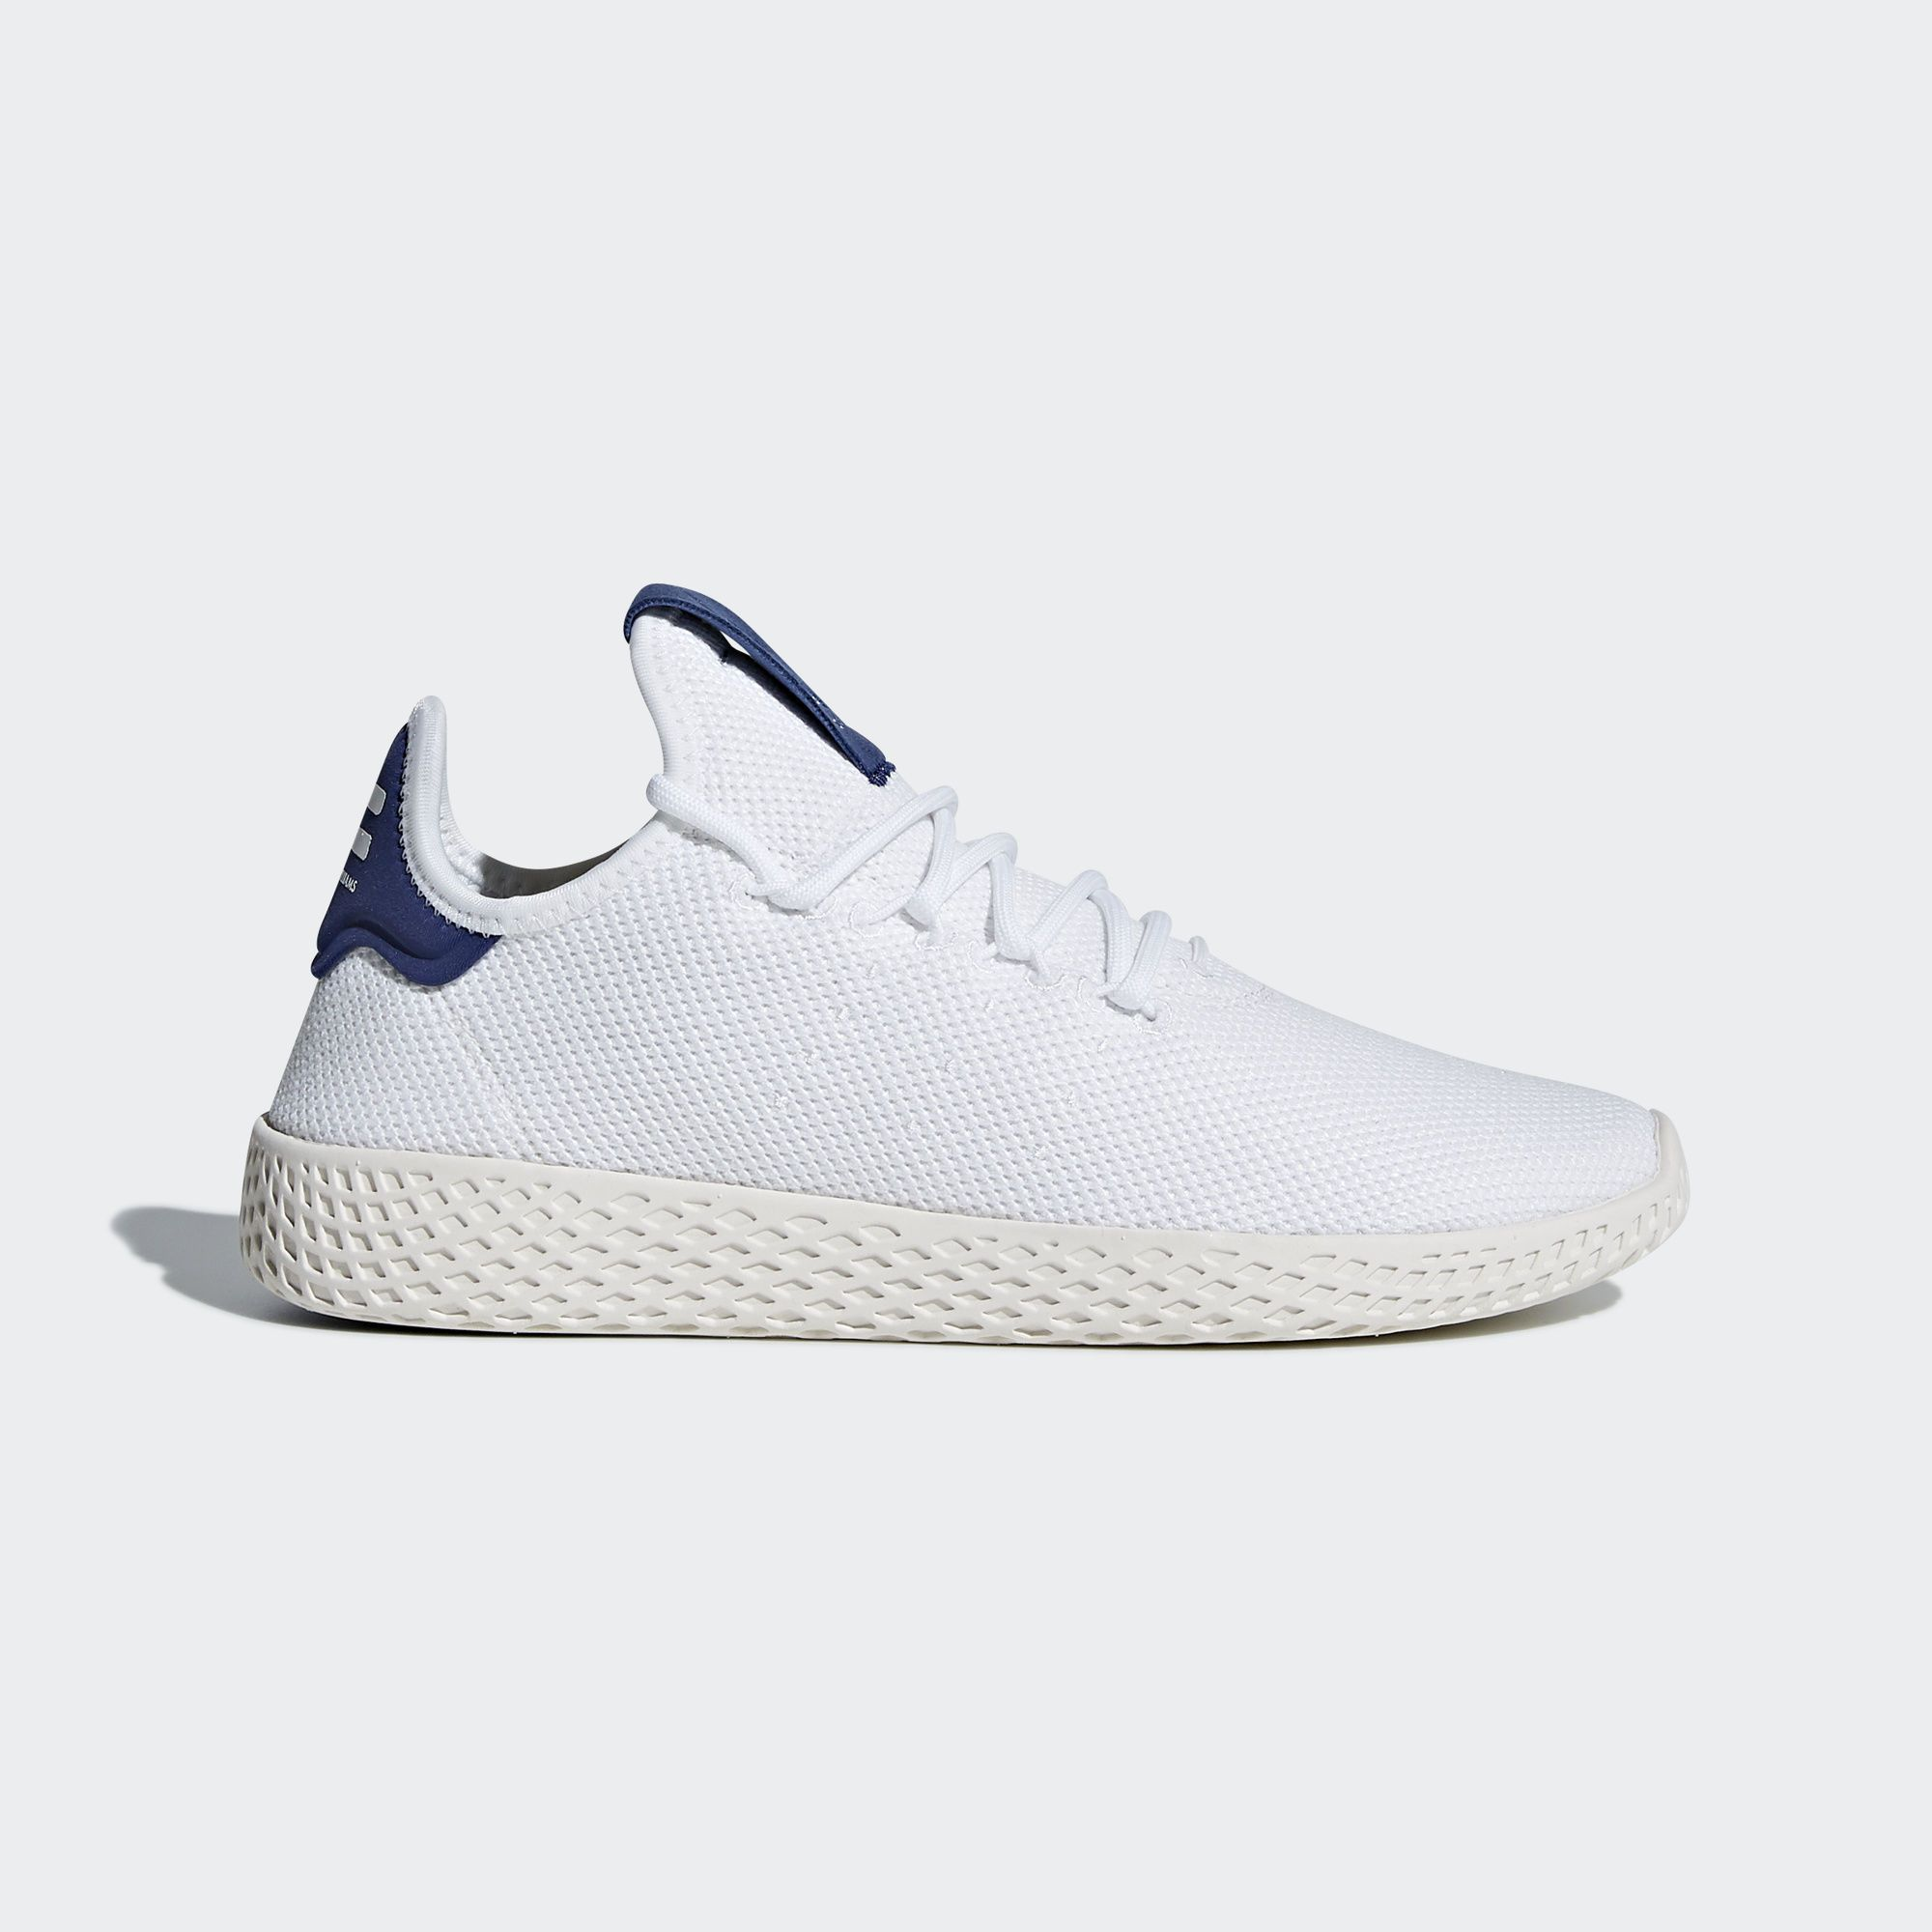 Shop The Pharrell Williams Tennis Hu Shoes White At Adidas Com Us See All The Styles A Adidas Sneakers Women Adidas Pharrell Williams Adidas Originals Women